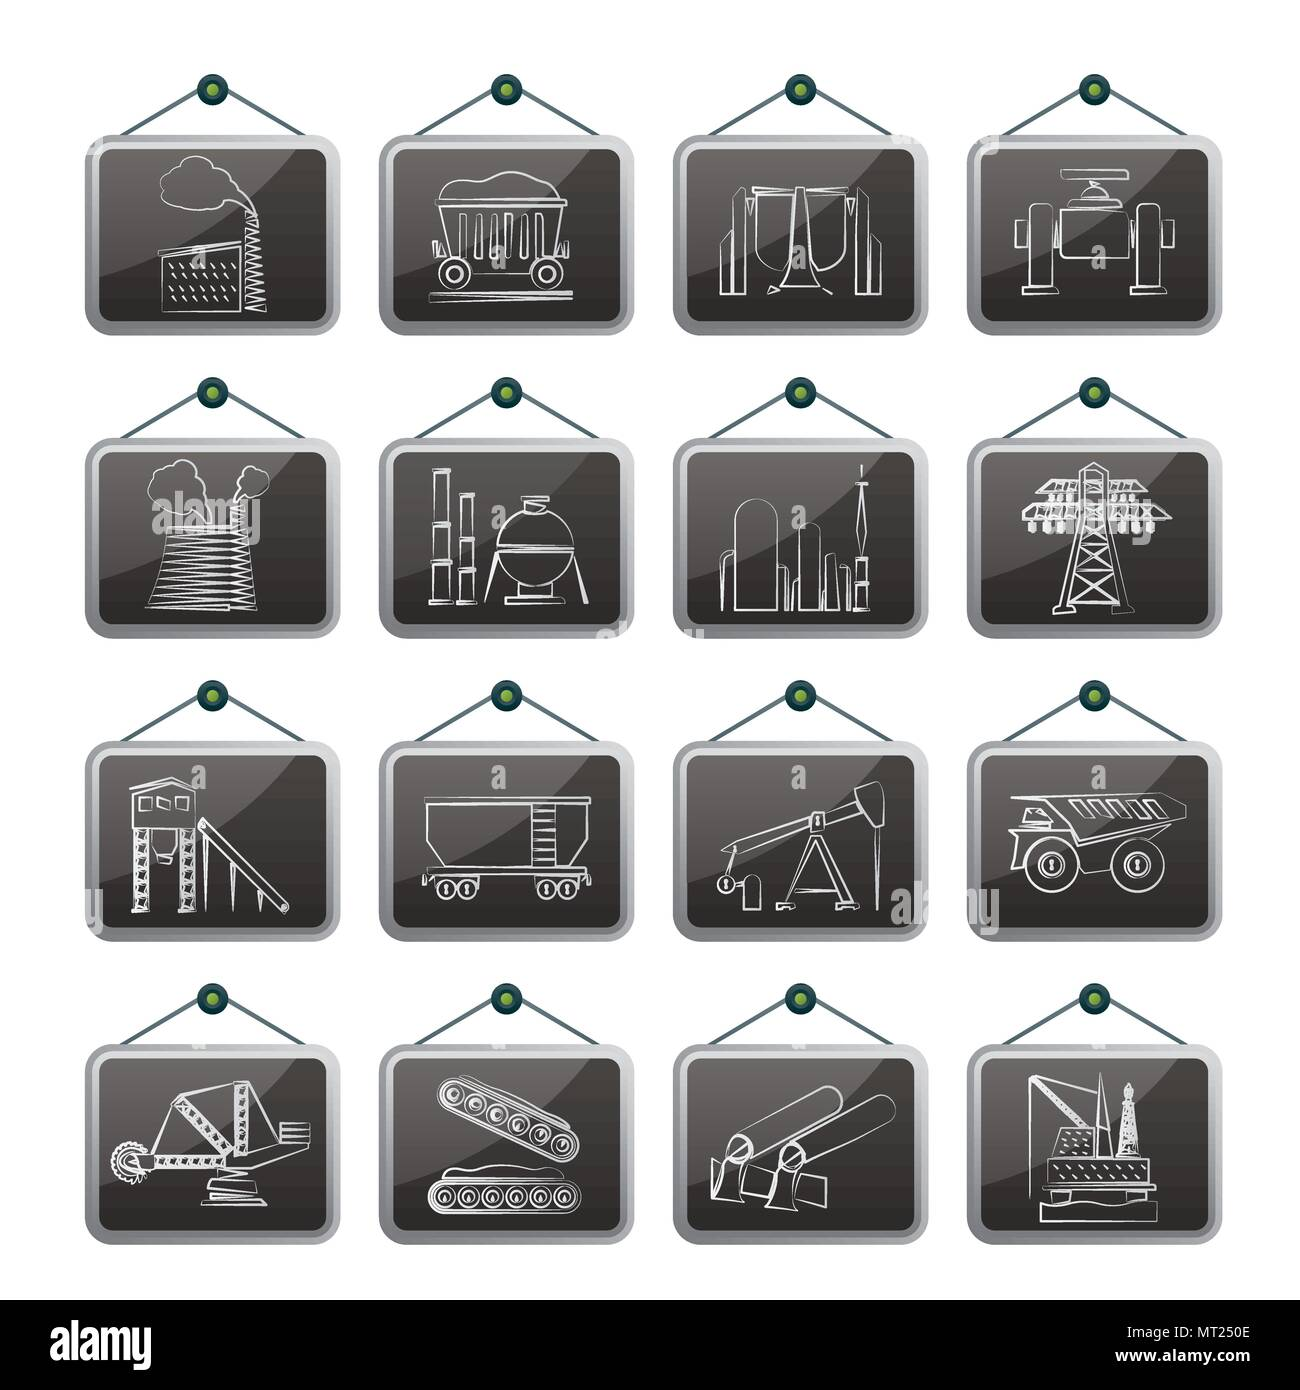 Heavy industry icons - vector icon set Stock Vector